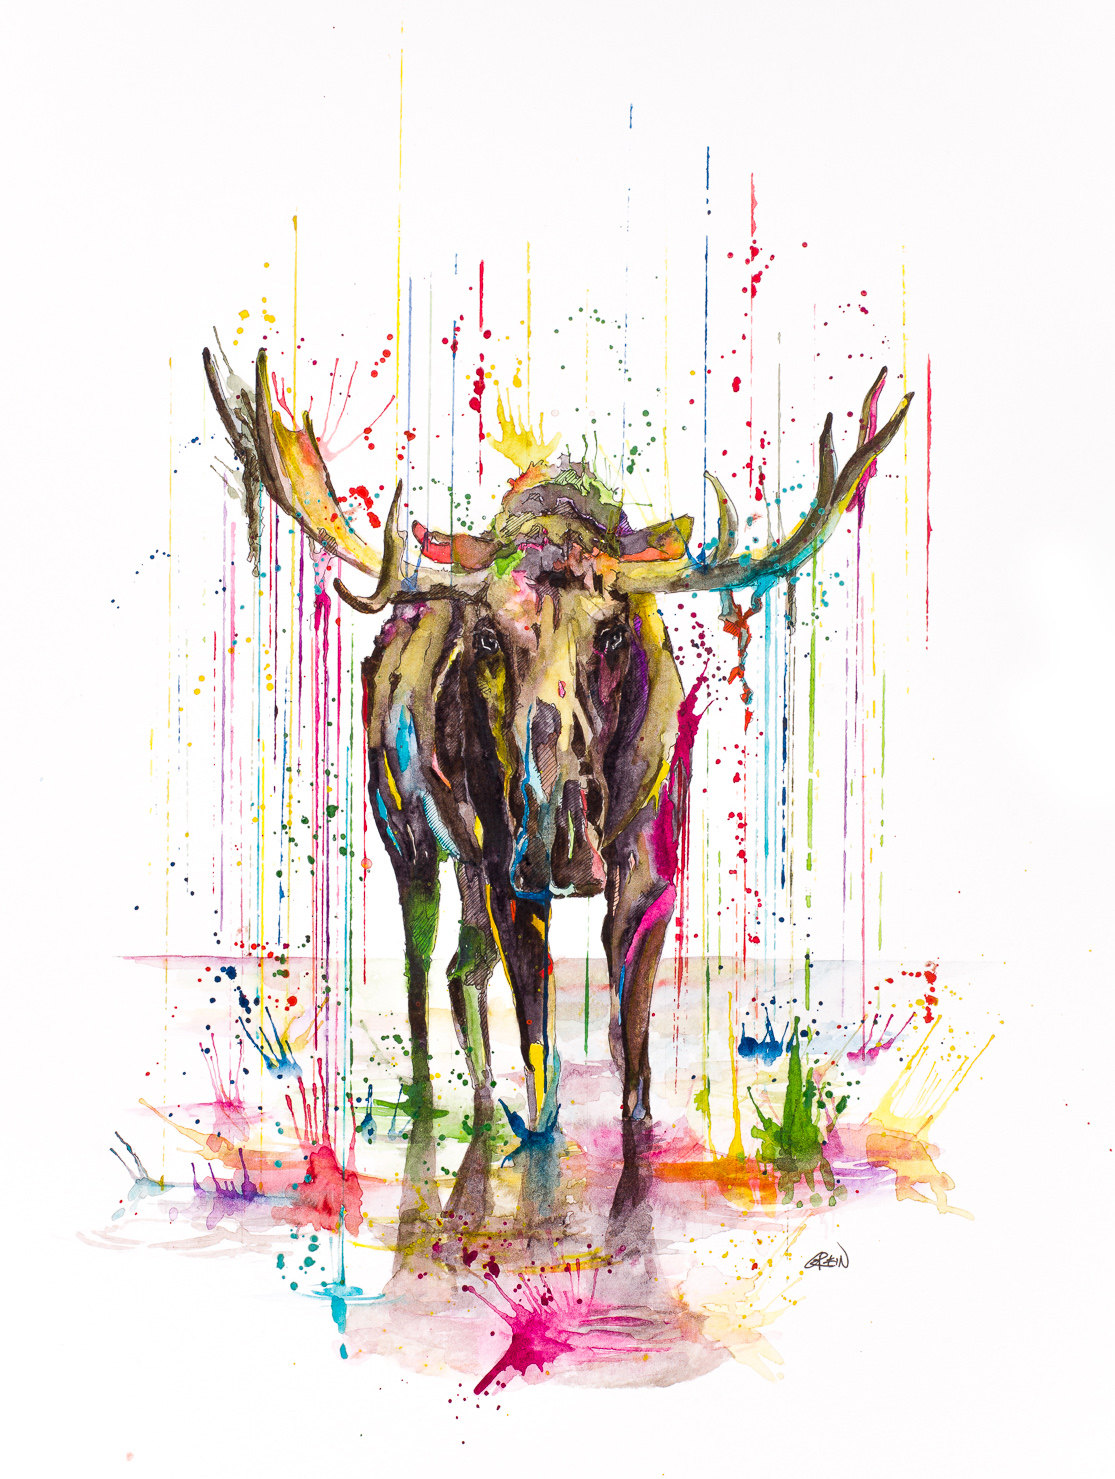 07-Moose-Philipp-Grein-Animal-Paintings-in-Splashes-of-Color-www-designstack-co